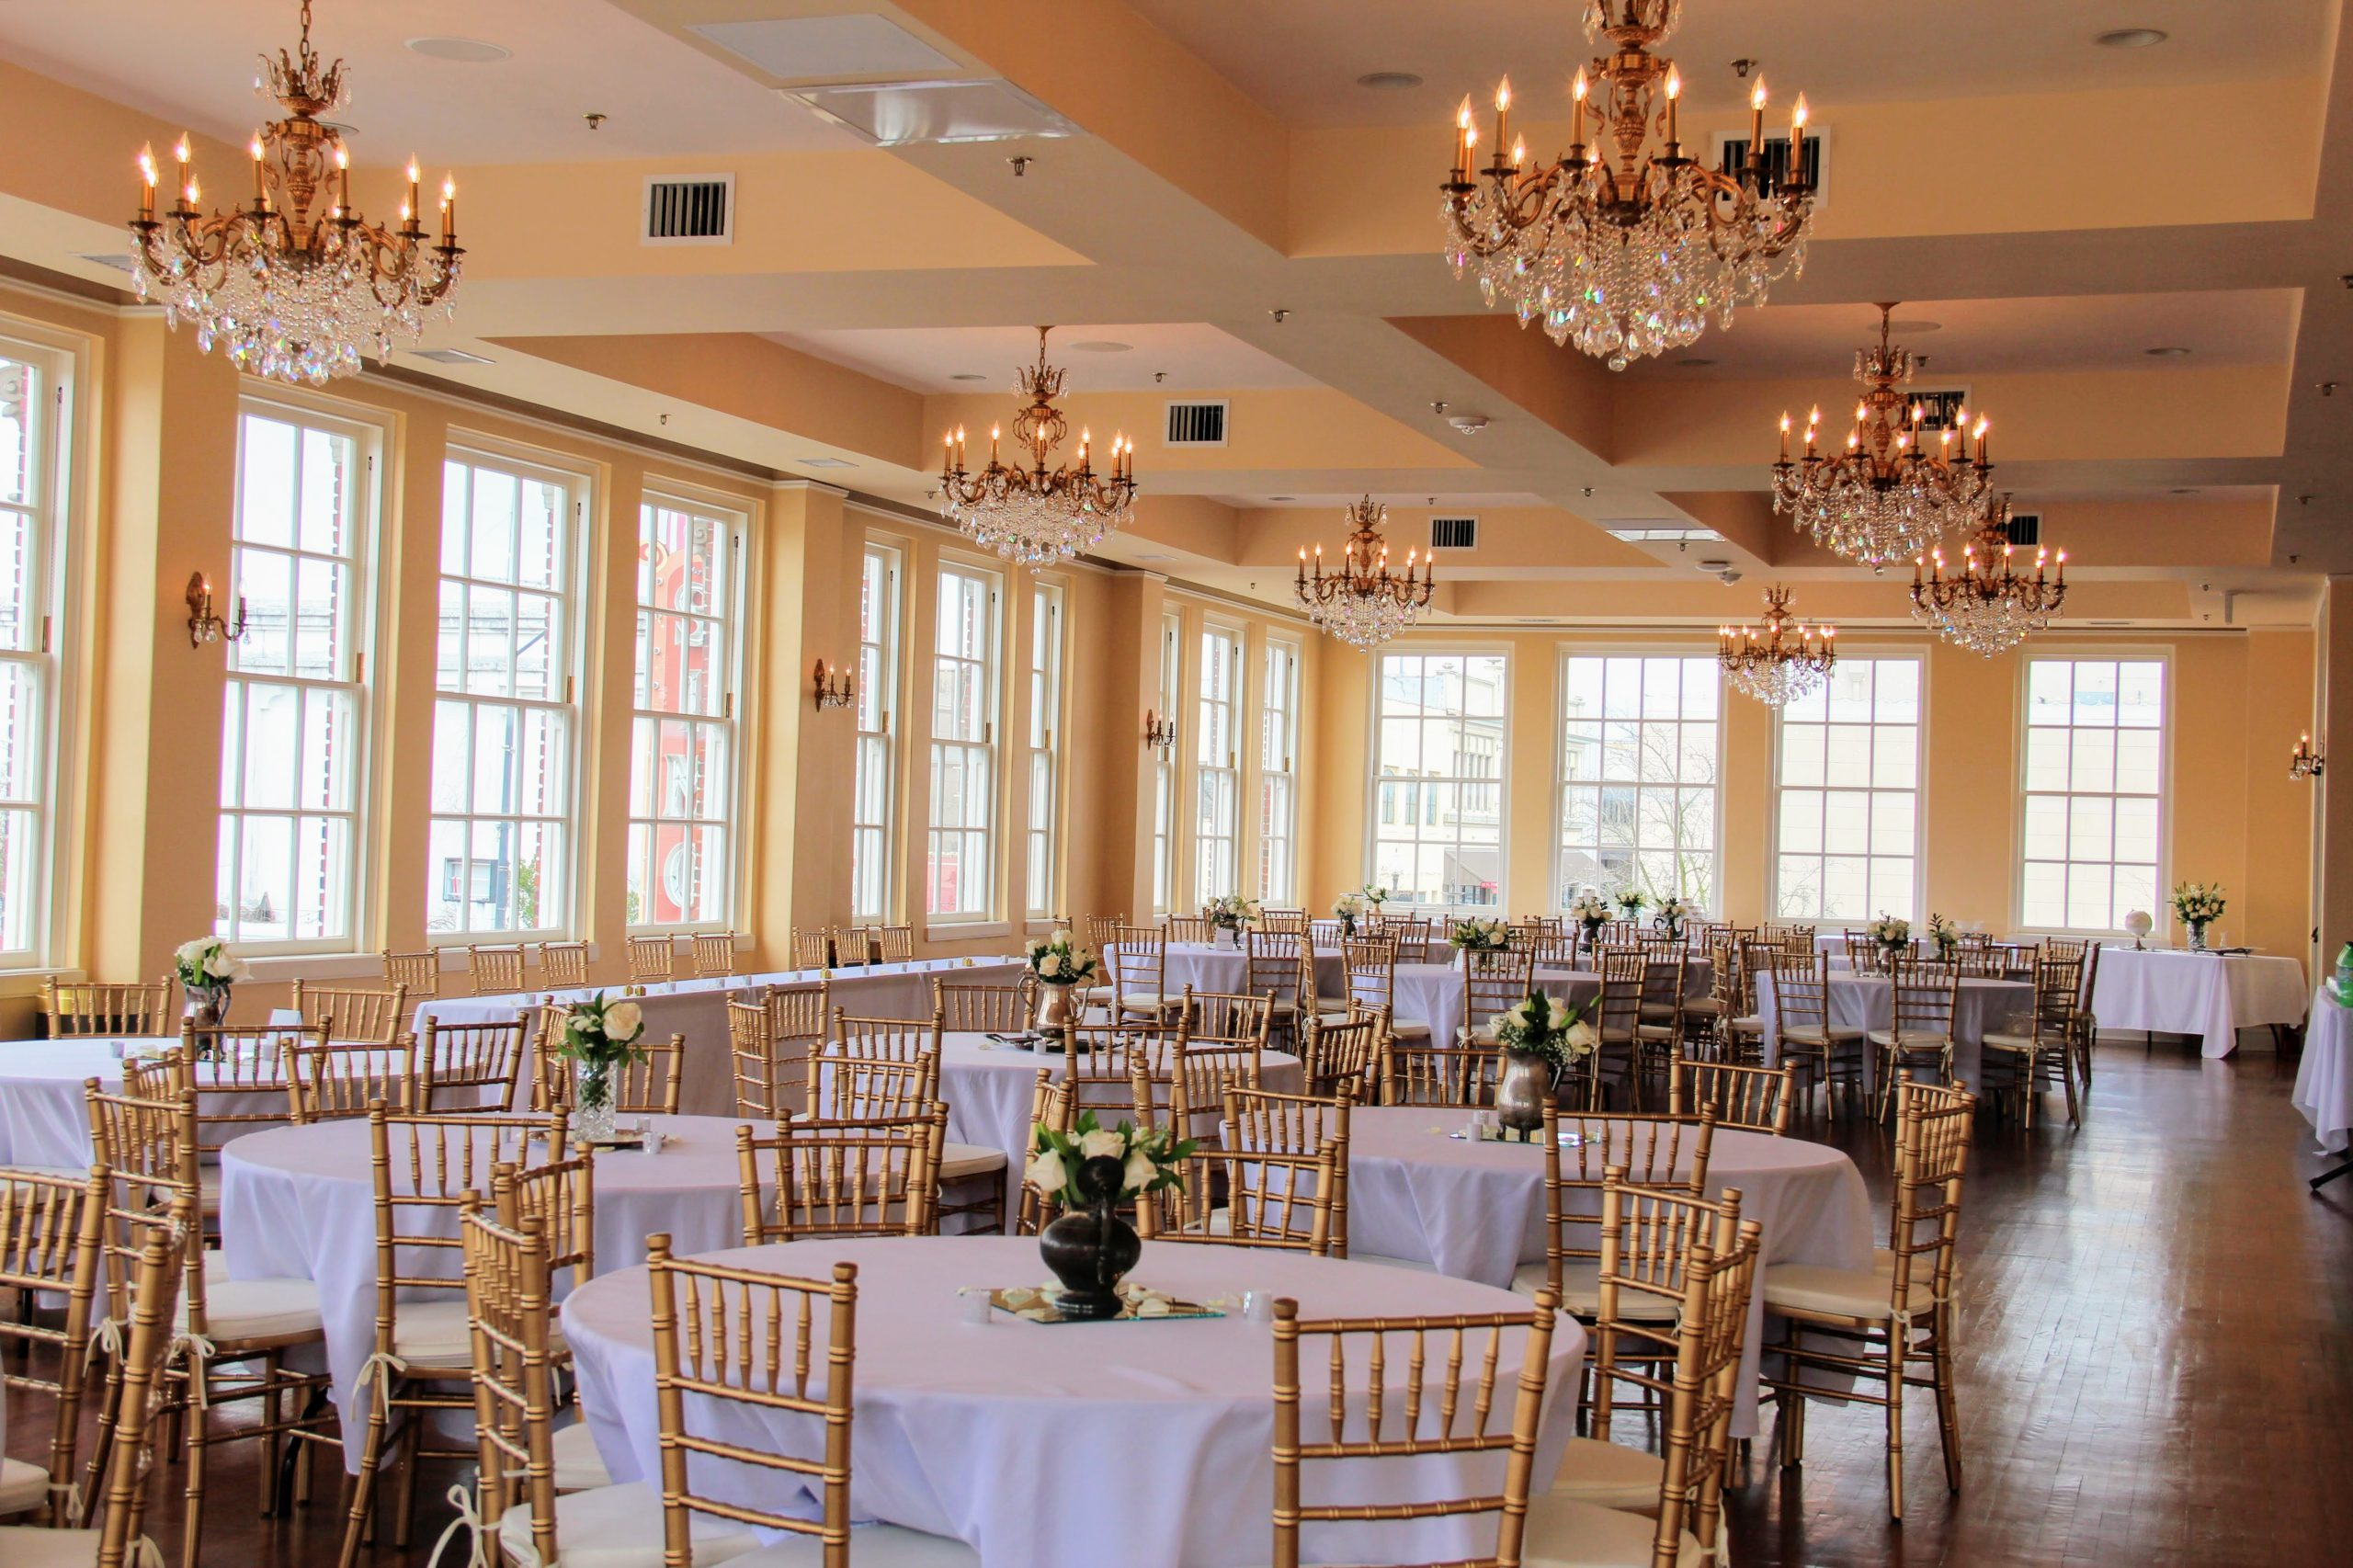 Silver teapots full of white roses and baby's breath sits atop glass mirrors sprinkled with rose petals and silver candles on white tables in the Bullock Ballroom.